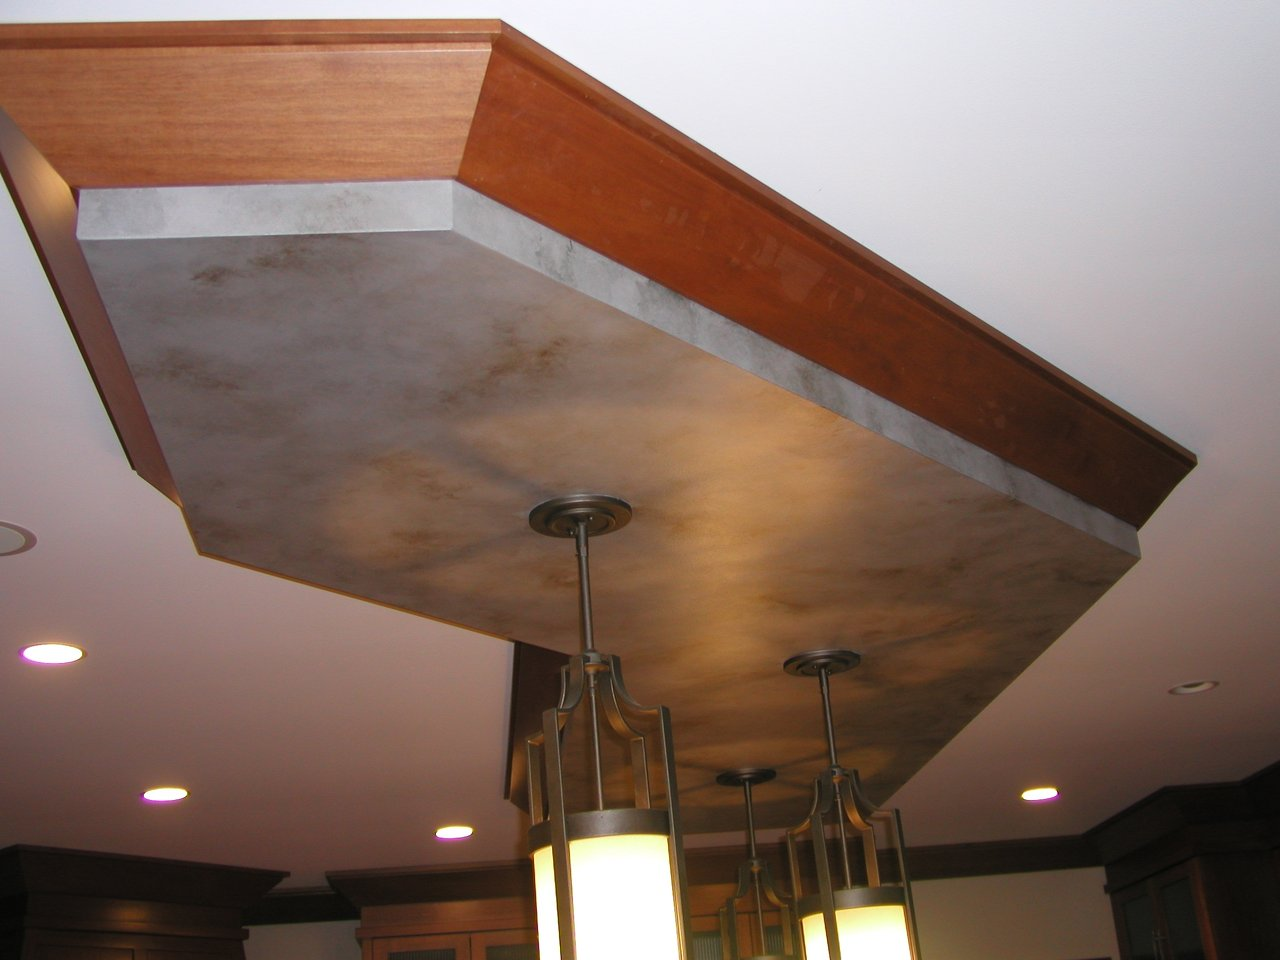 The kitchen drop soffit.